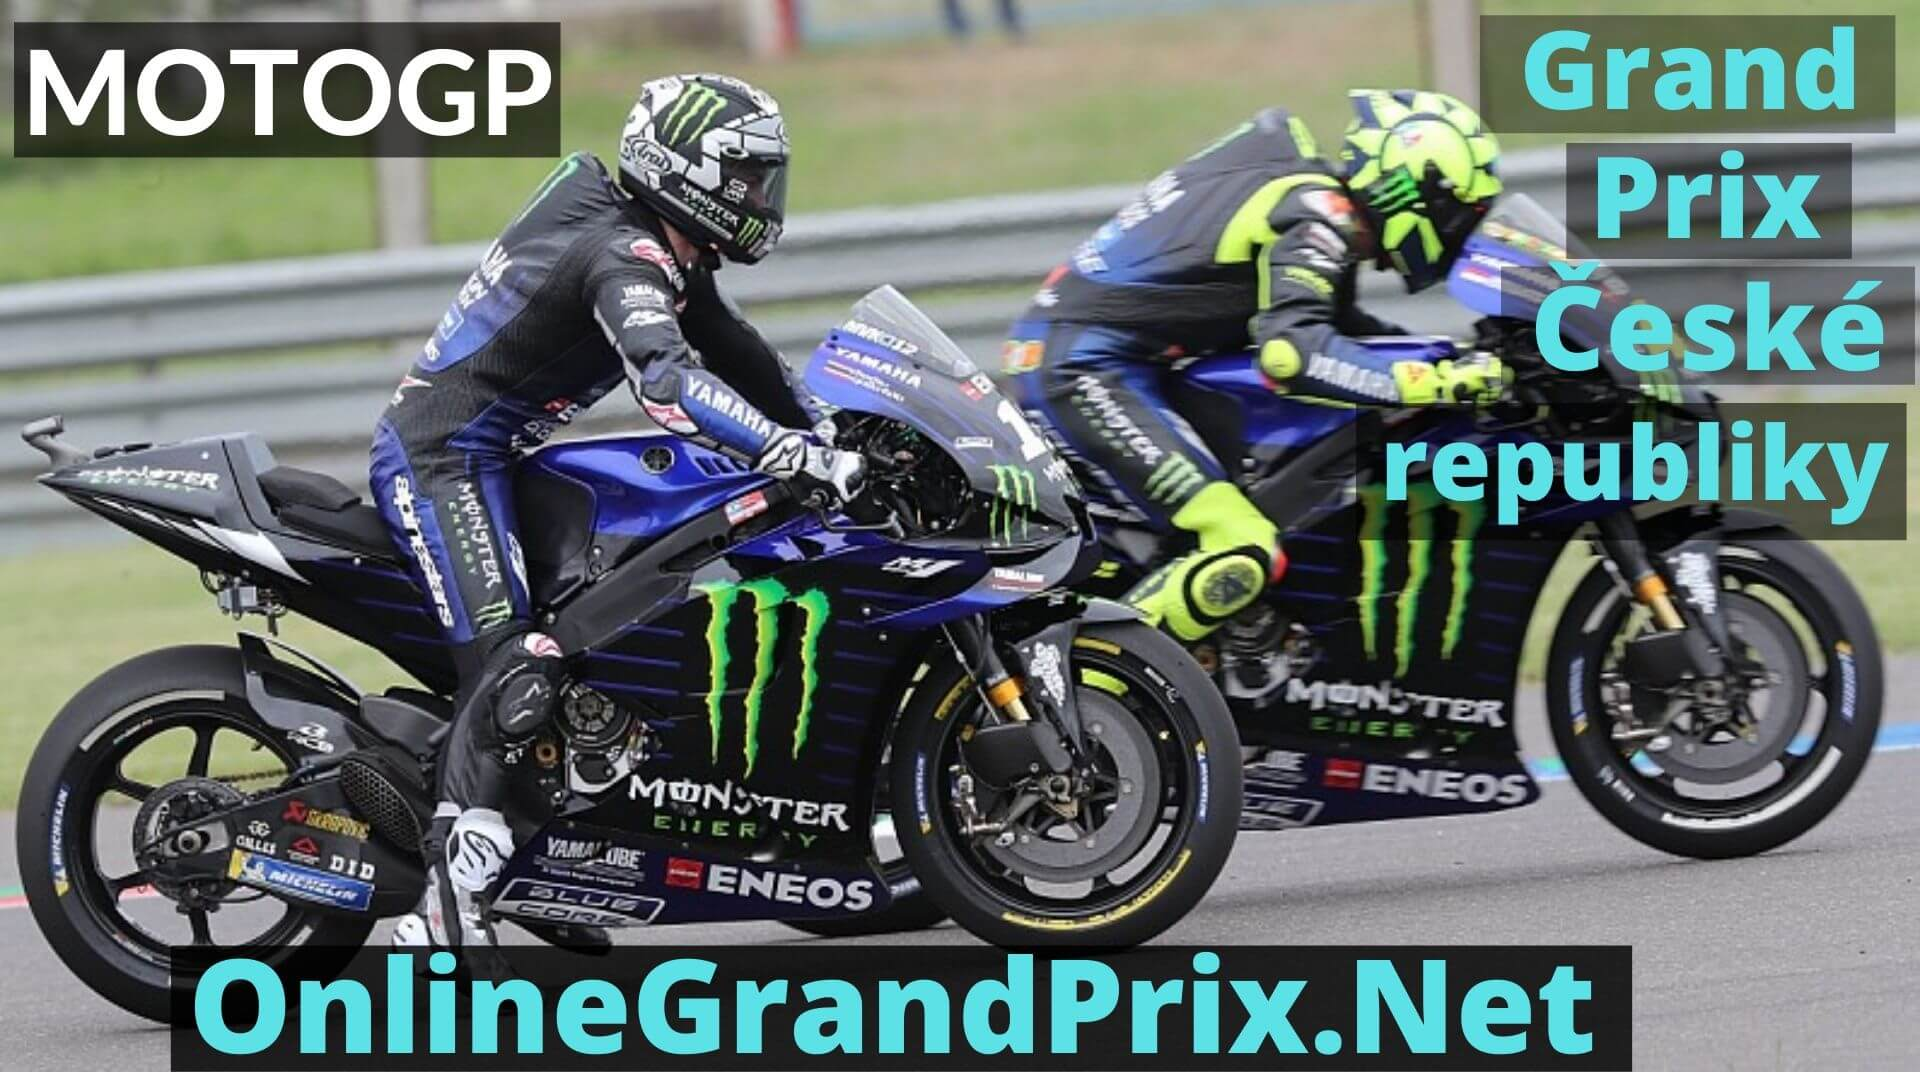 Grand Prix Ceskre republiky Live Stream 2020 | MotoGP